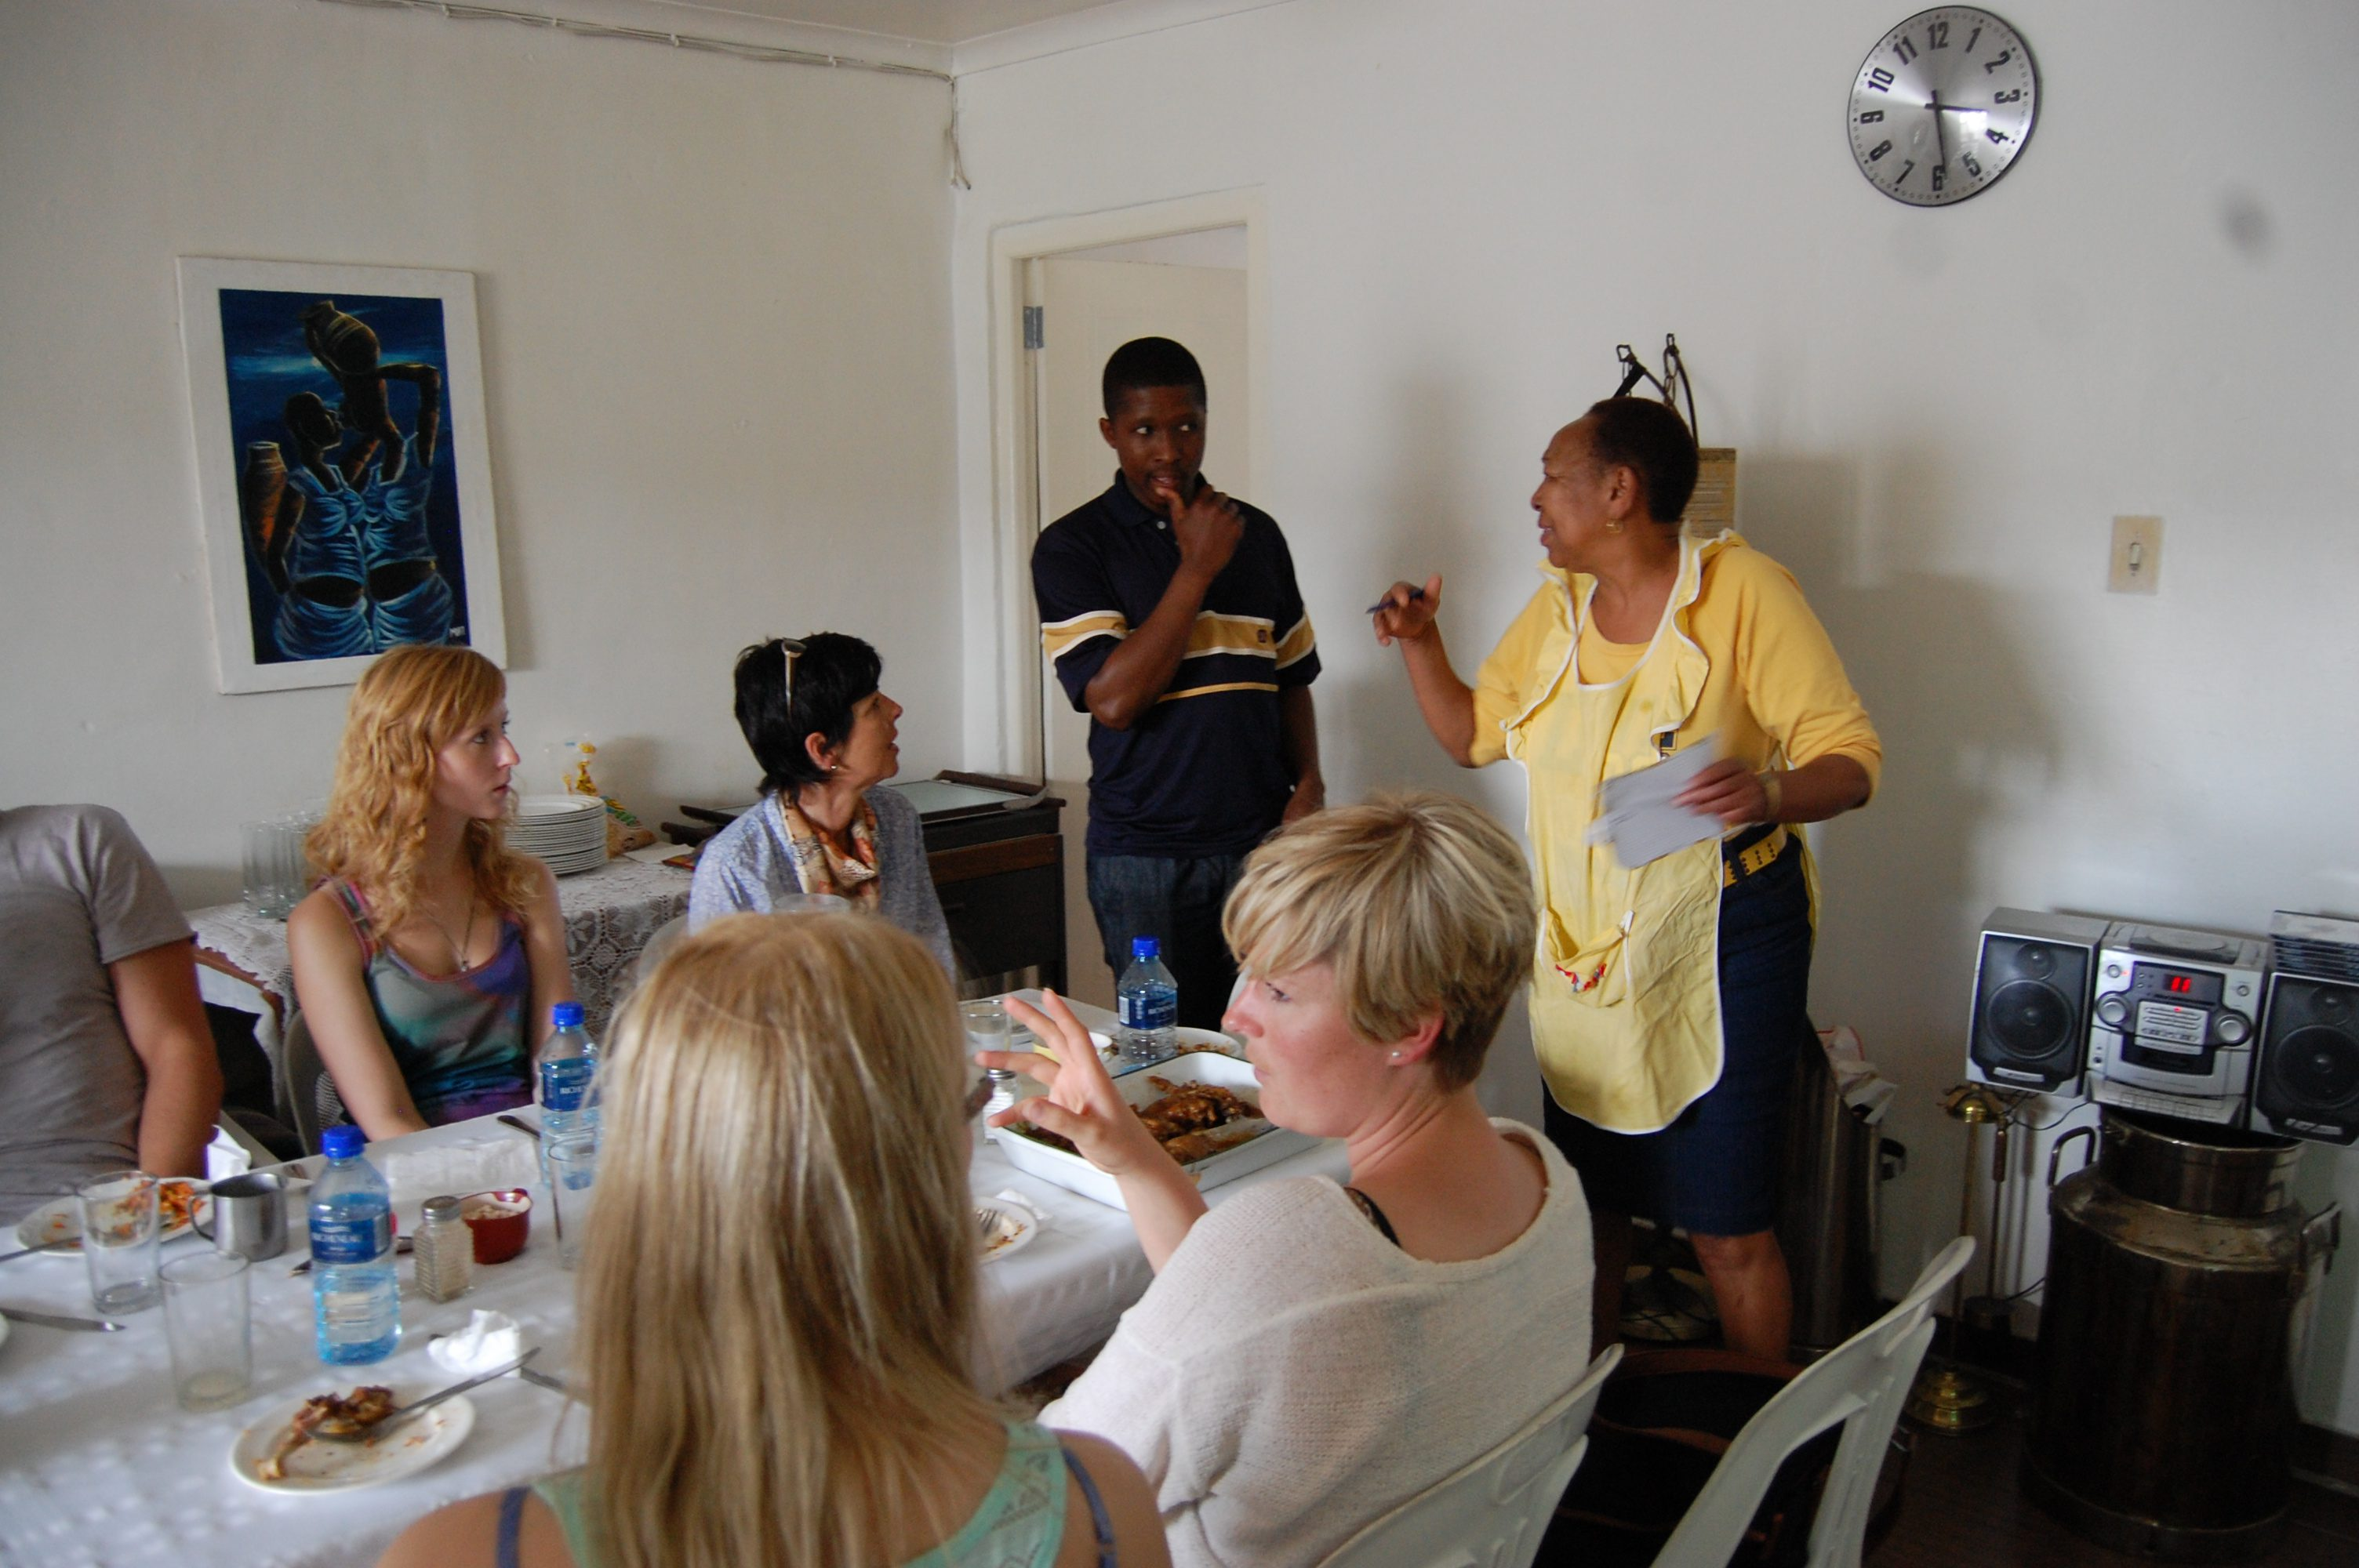 Sheila Tempi introduces a group of students to traditional isiXhosa food